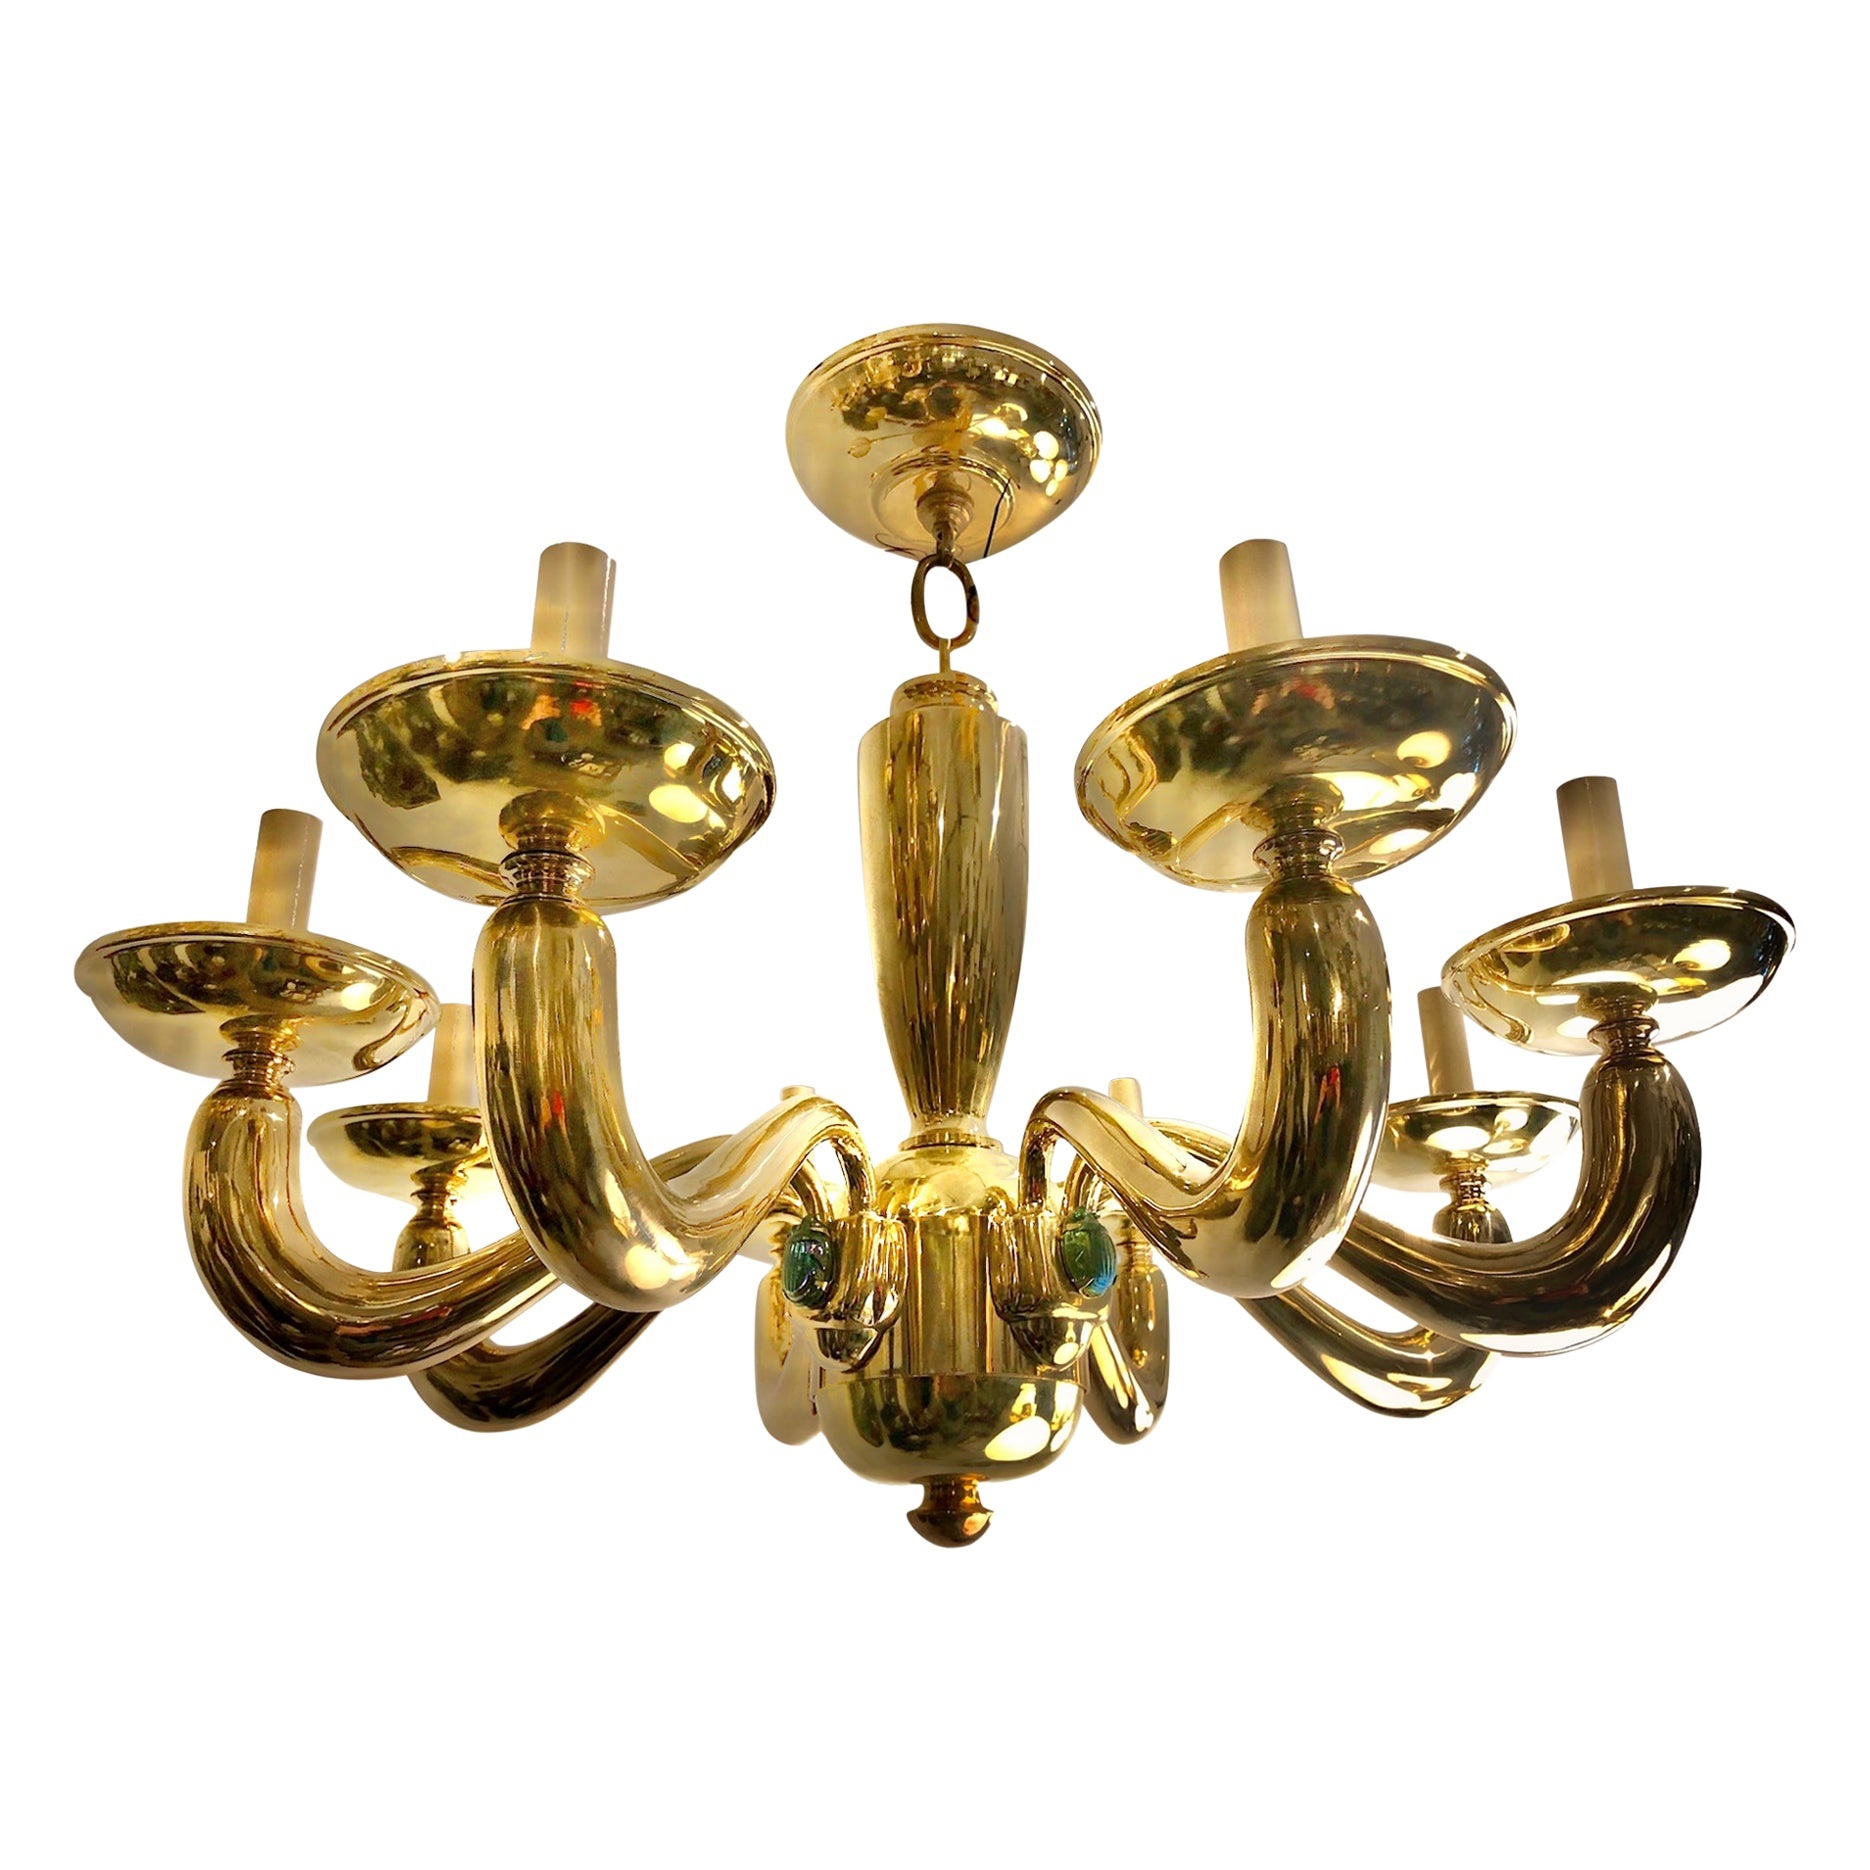 Pair of Midcentury Chandeliers with Glass Scarabs, Sold Individually